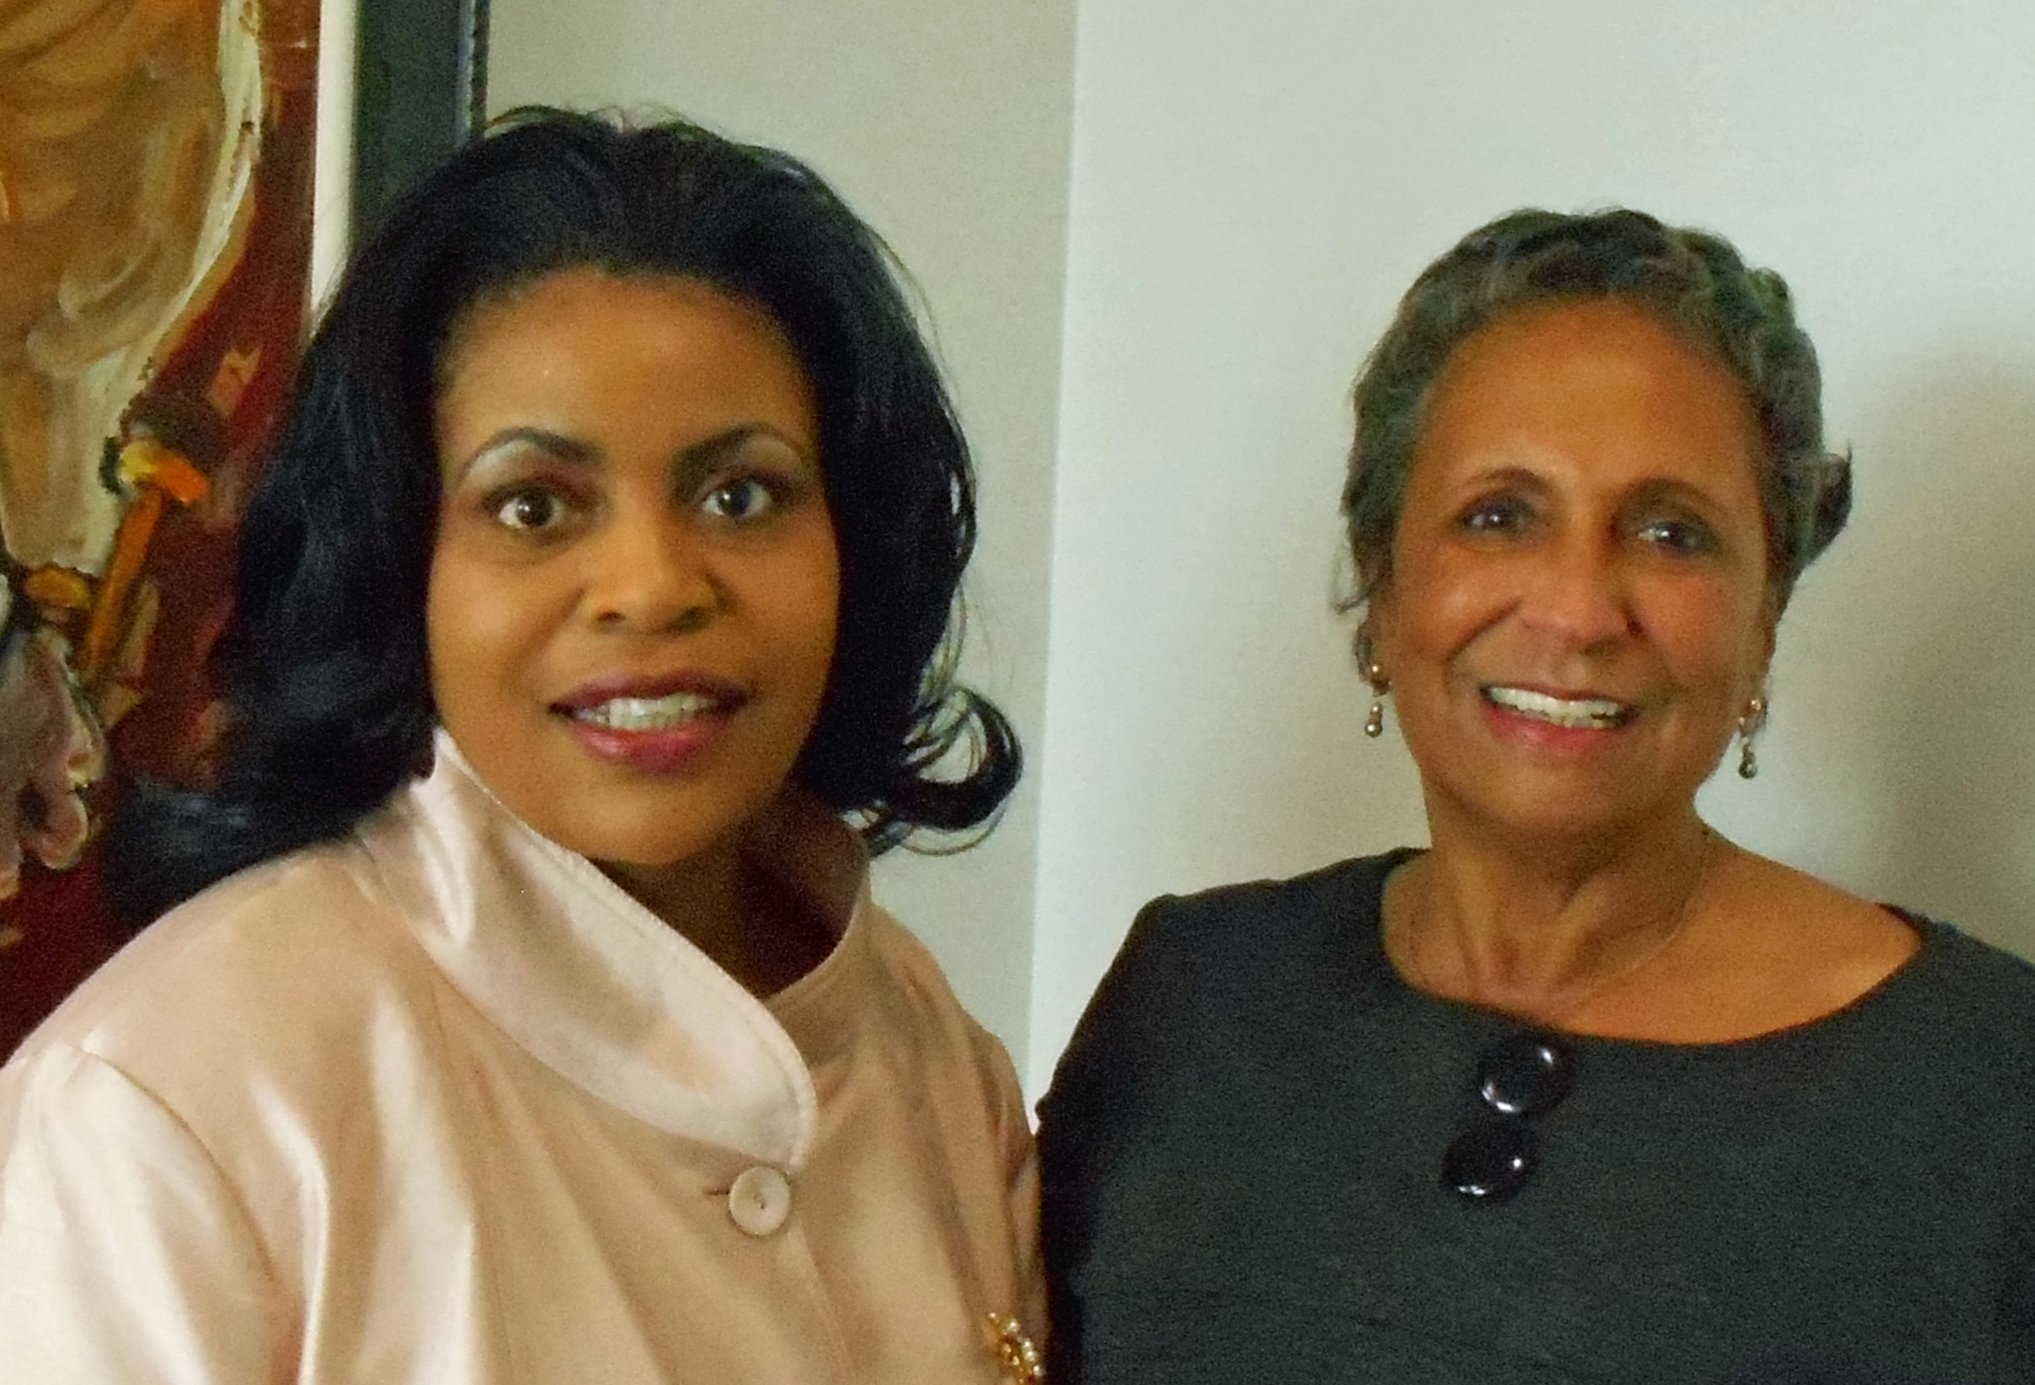 Linda Peavy and Cathy Hughes, Founder and Chairperson of Radio One